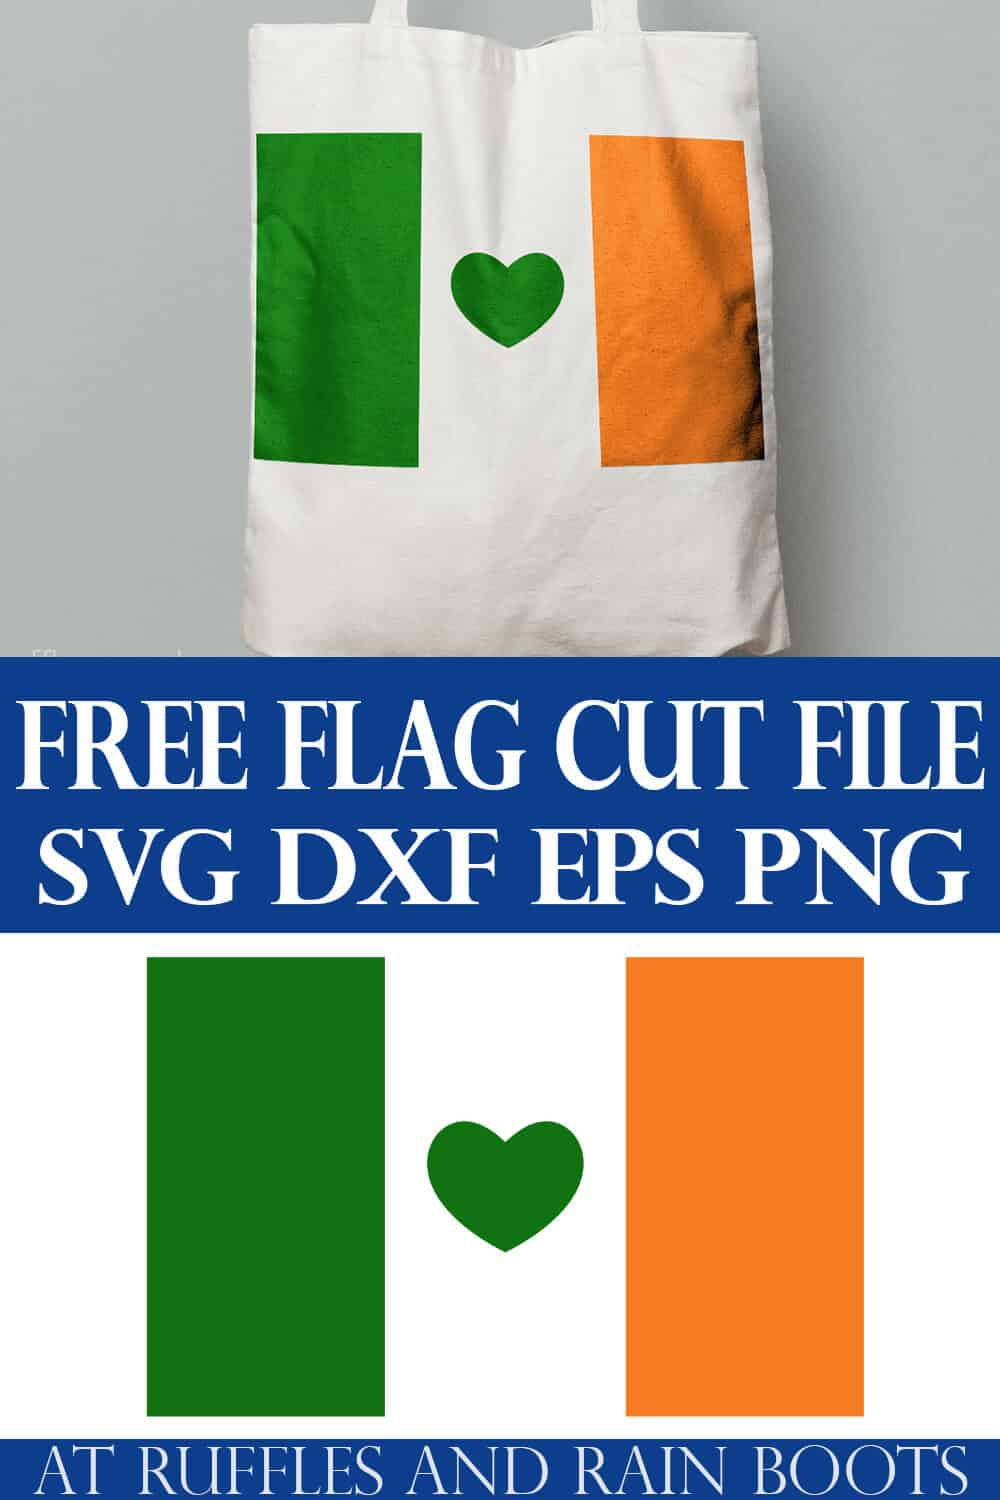 Irish flag svg with heart in green and orange SVG file for Cricut